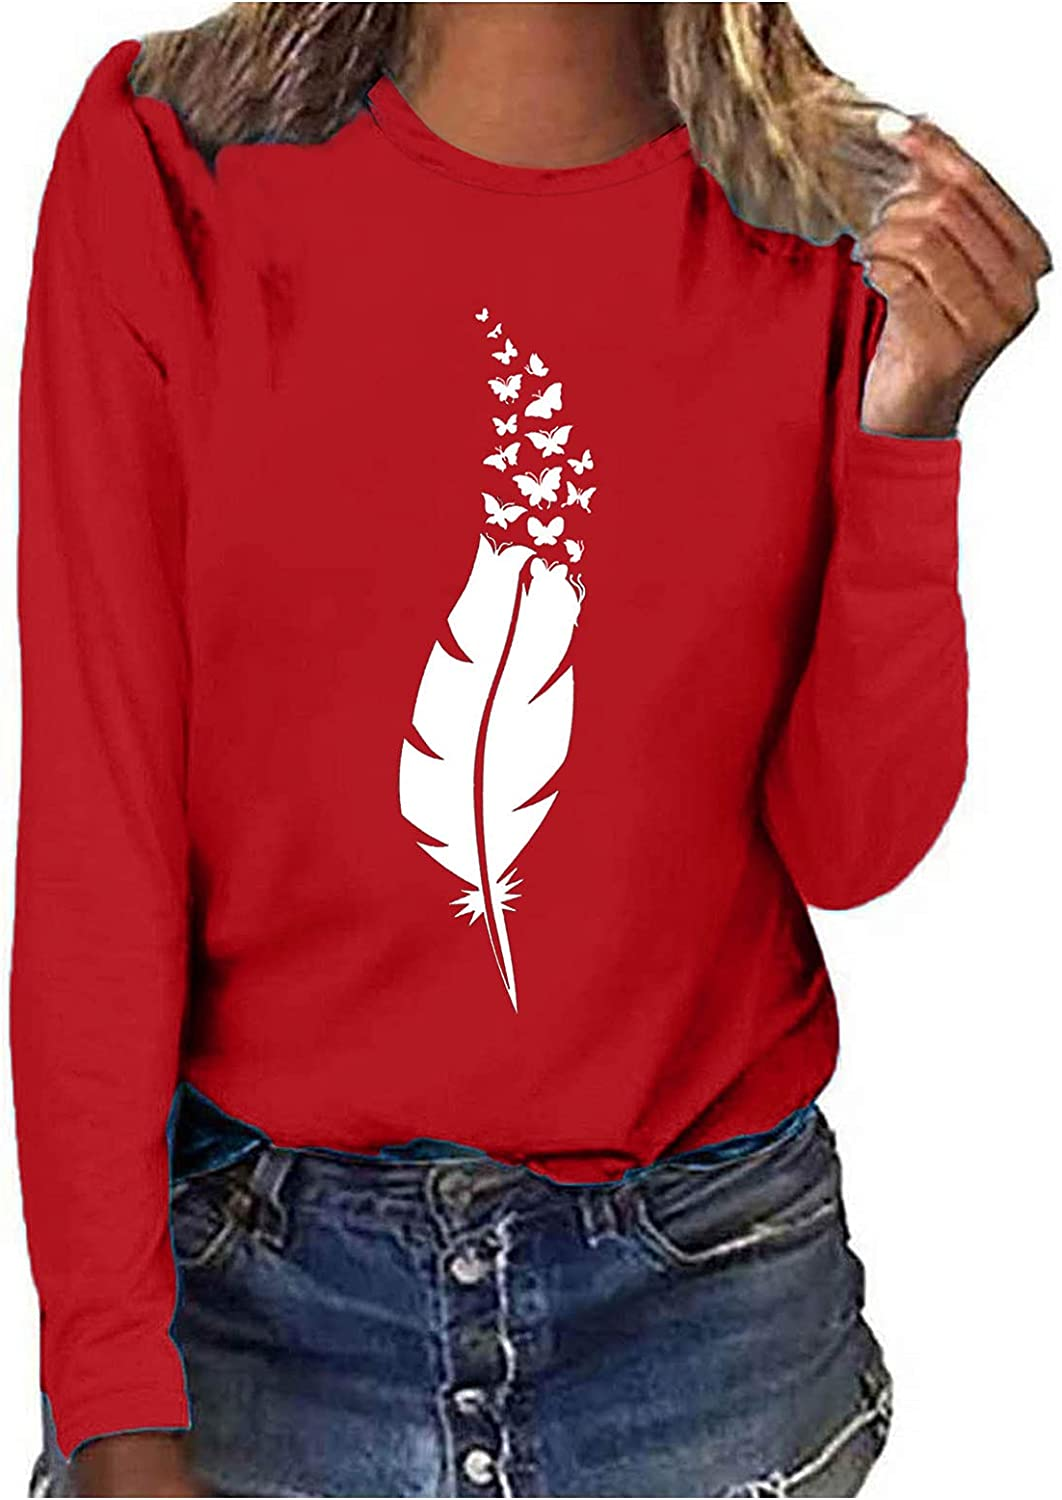 FABIURT Cute Sweatshirts for Women, Womens Casual Feather Printed Long Sleeve Pullover Blouses Crewneck Graphic Sweaters